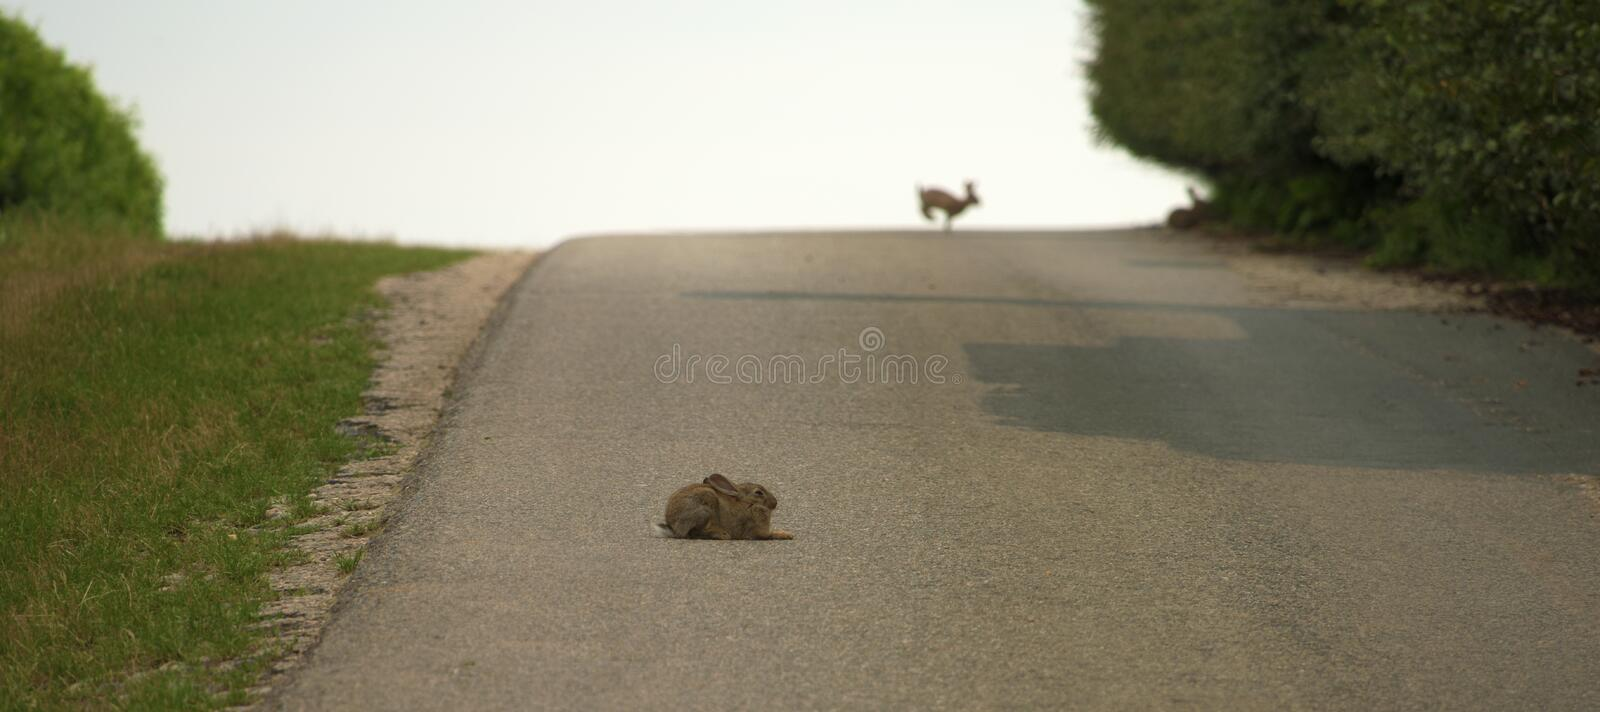 Hare lying on asphalt road royalty free stock photos